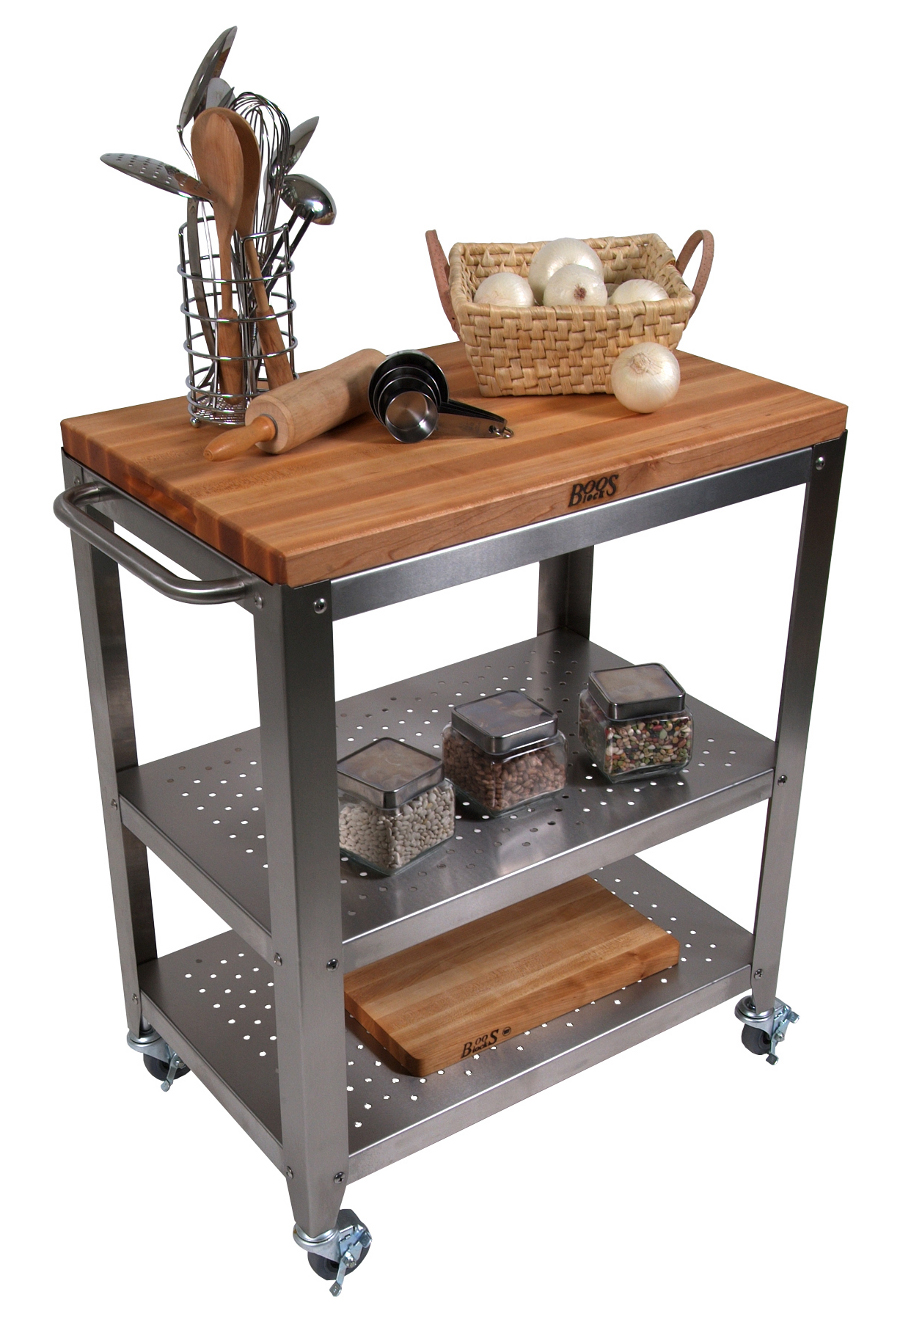 Boos Cucina Culinarte Cart – Removable 30x20 Maple Butcher Block